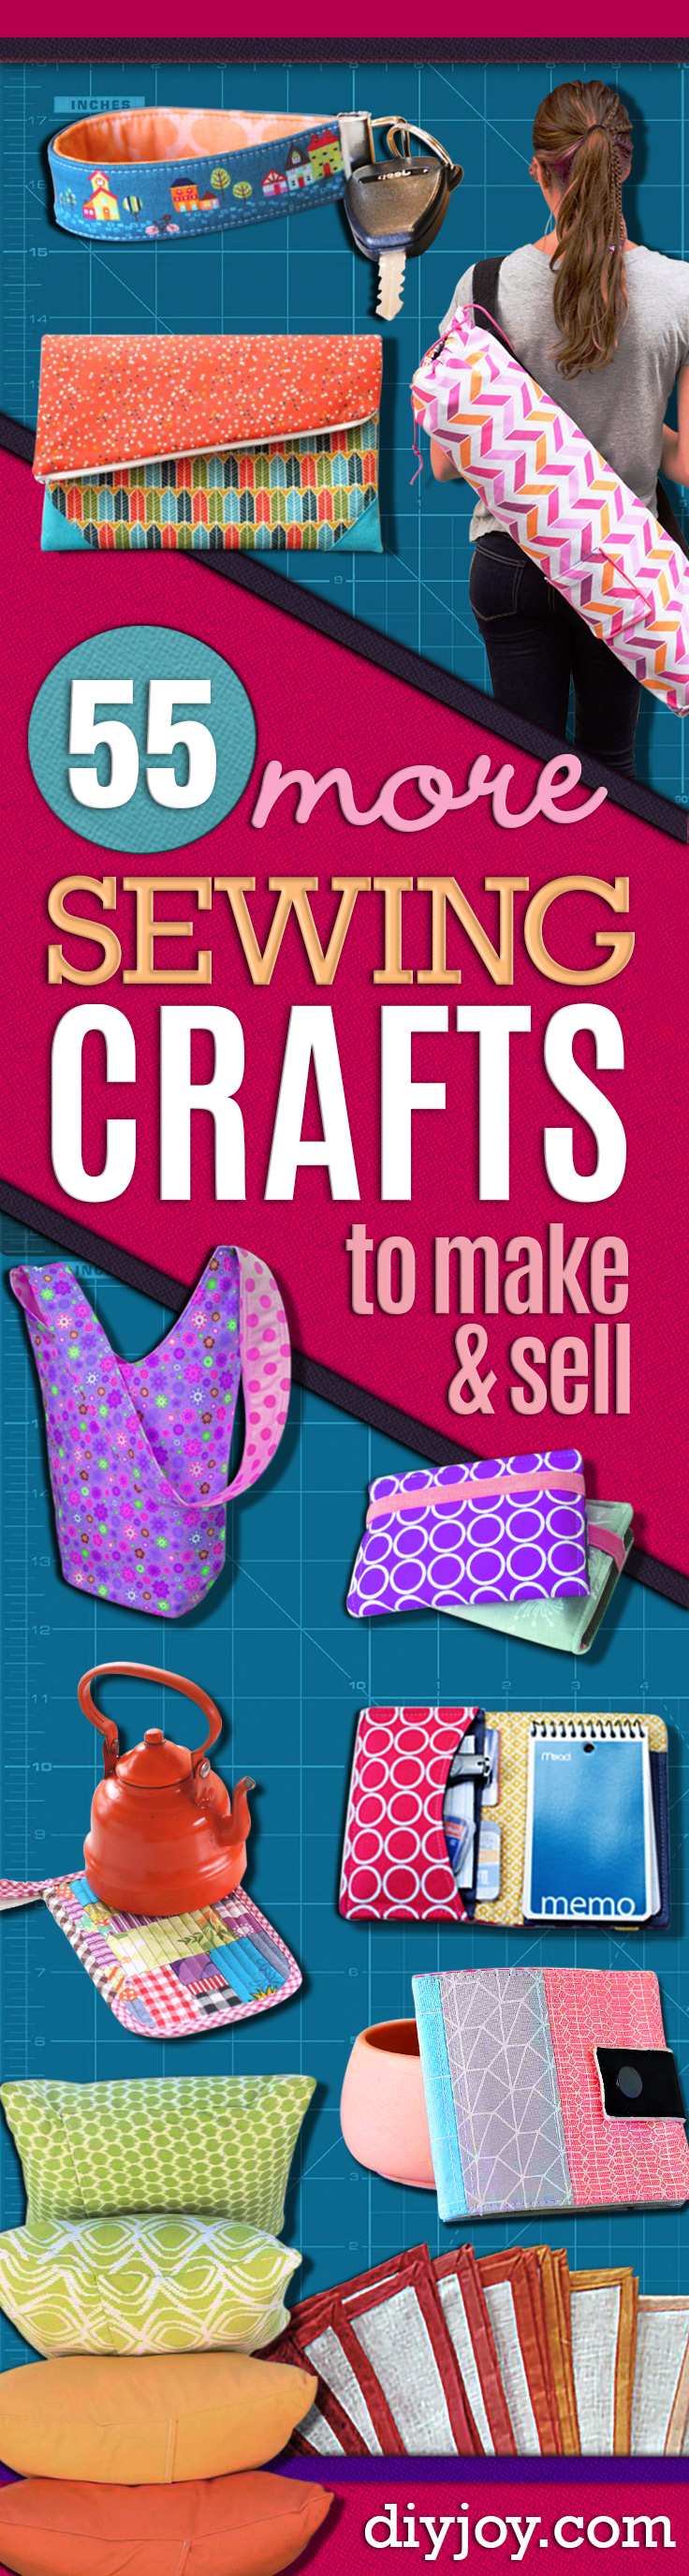 sewing craft ideas to sell 1000 images about craft ideas on 7127